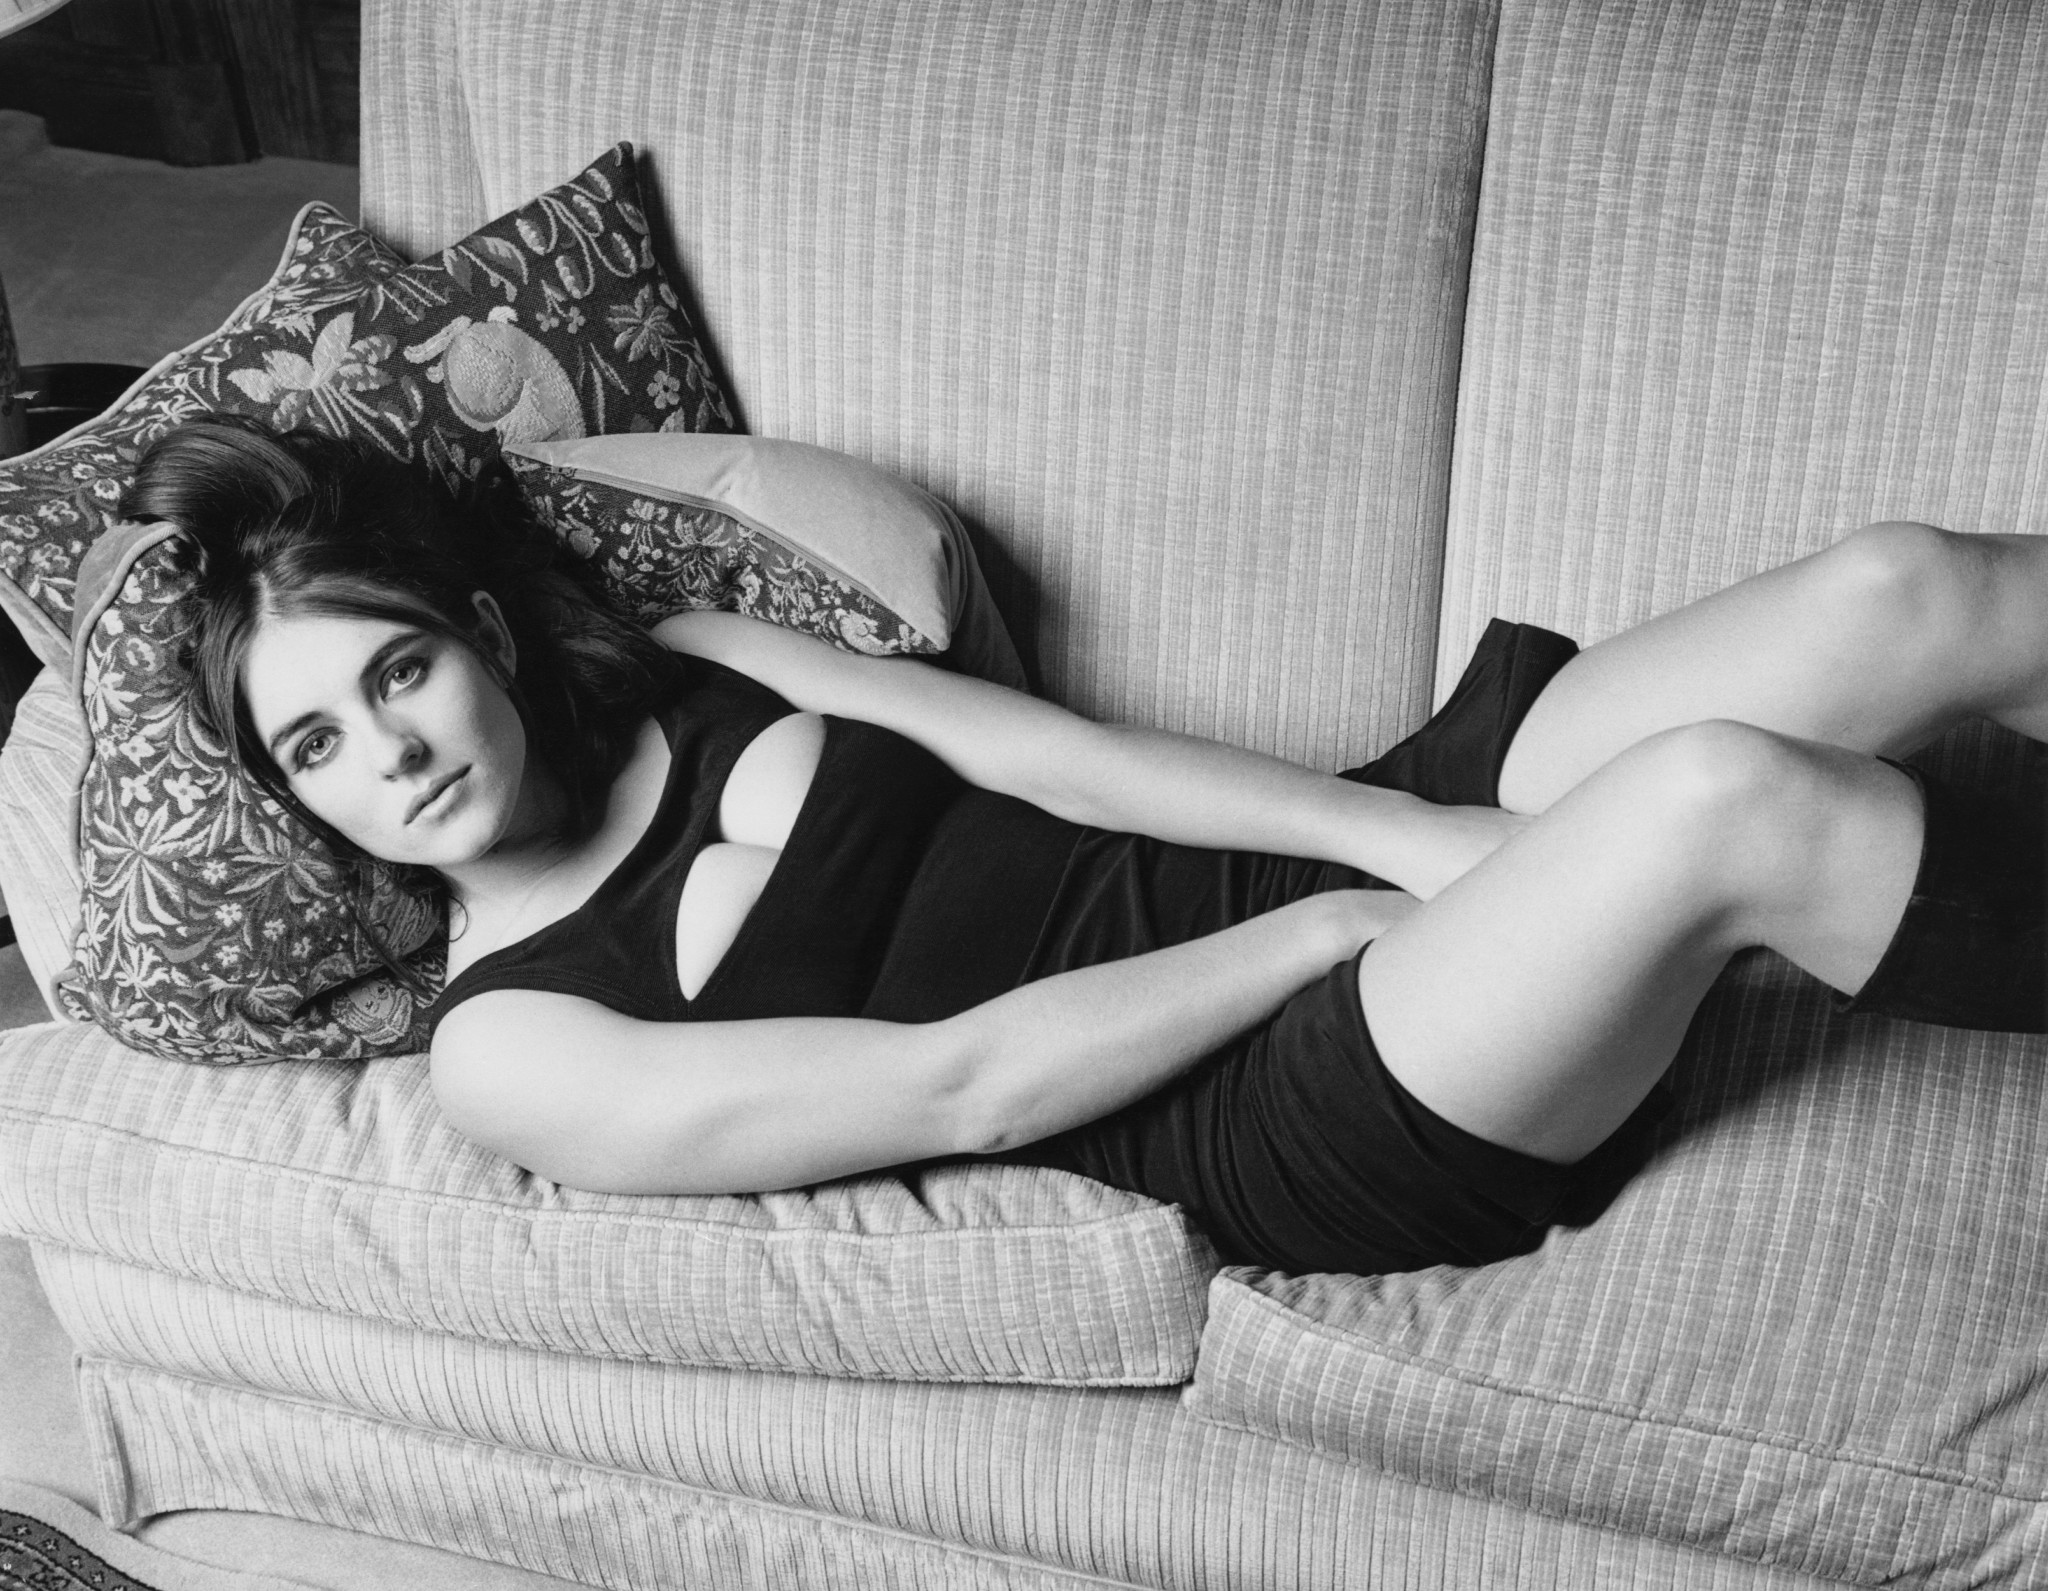 Elizabeth Hurley posed for Loaded's first issue